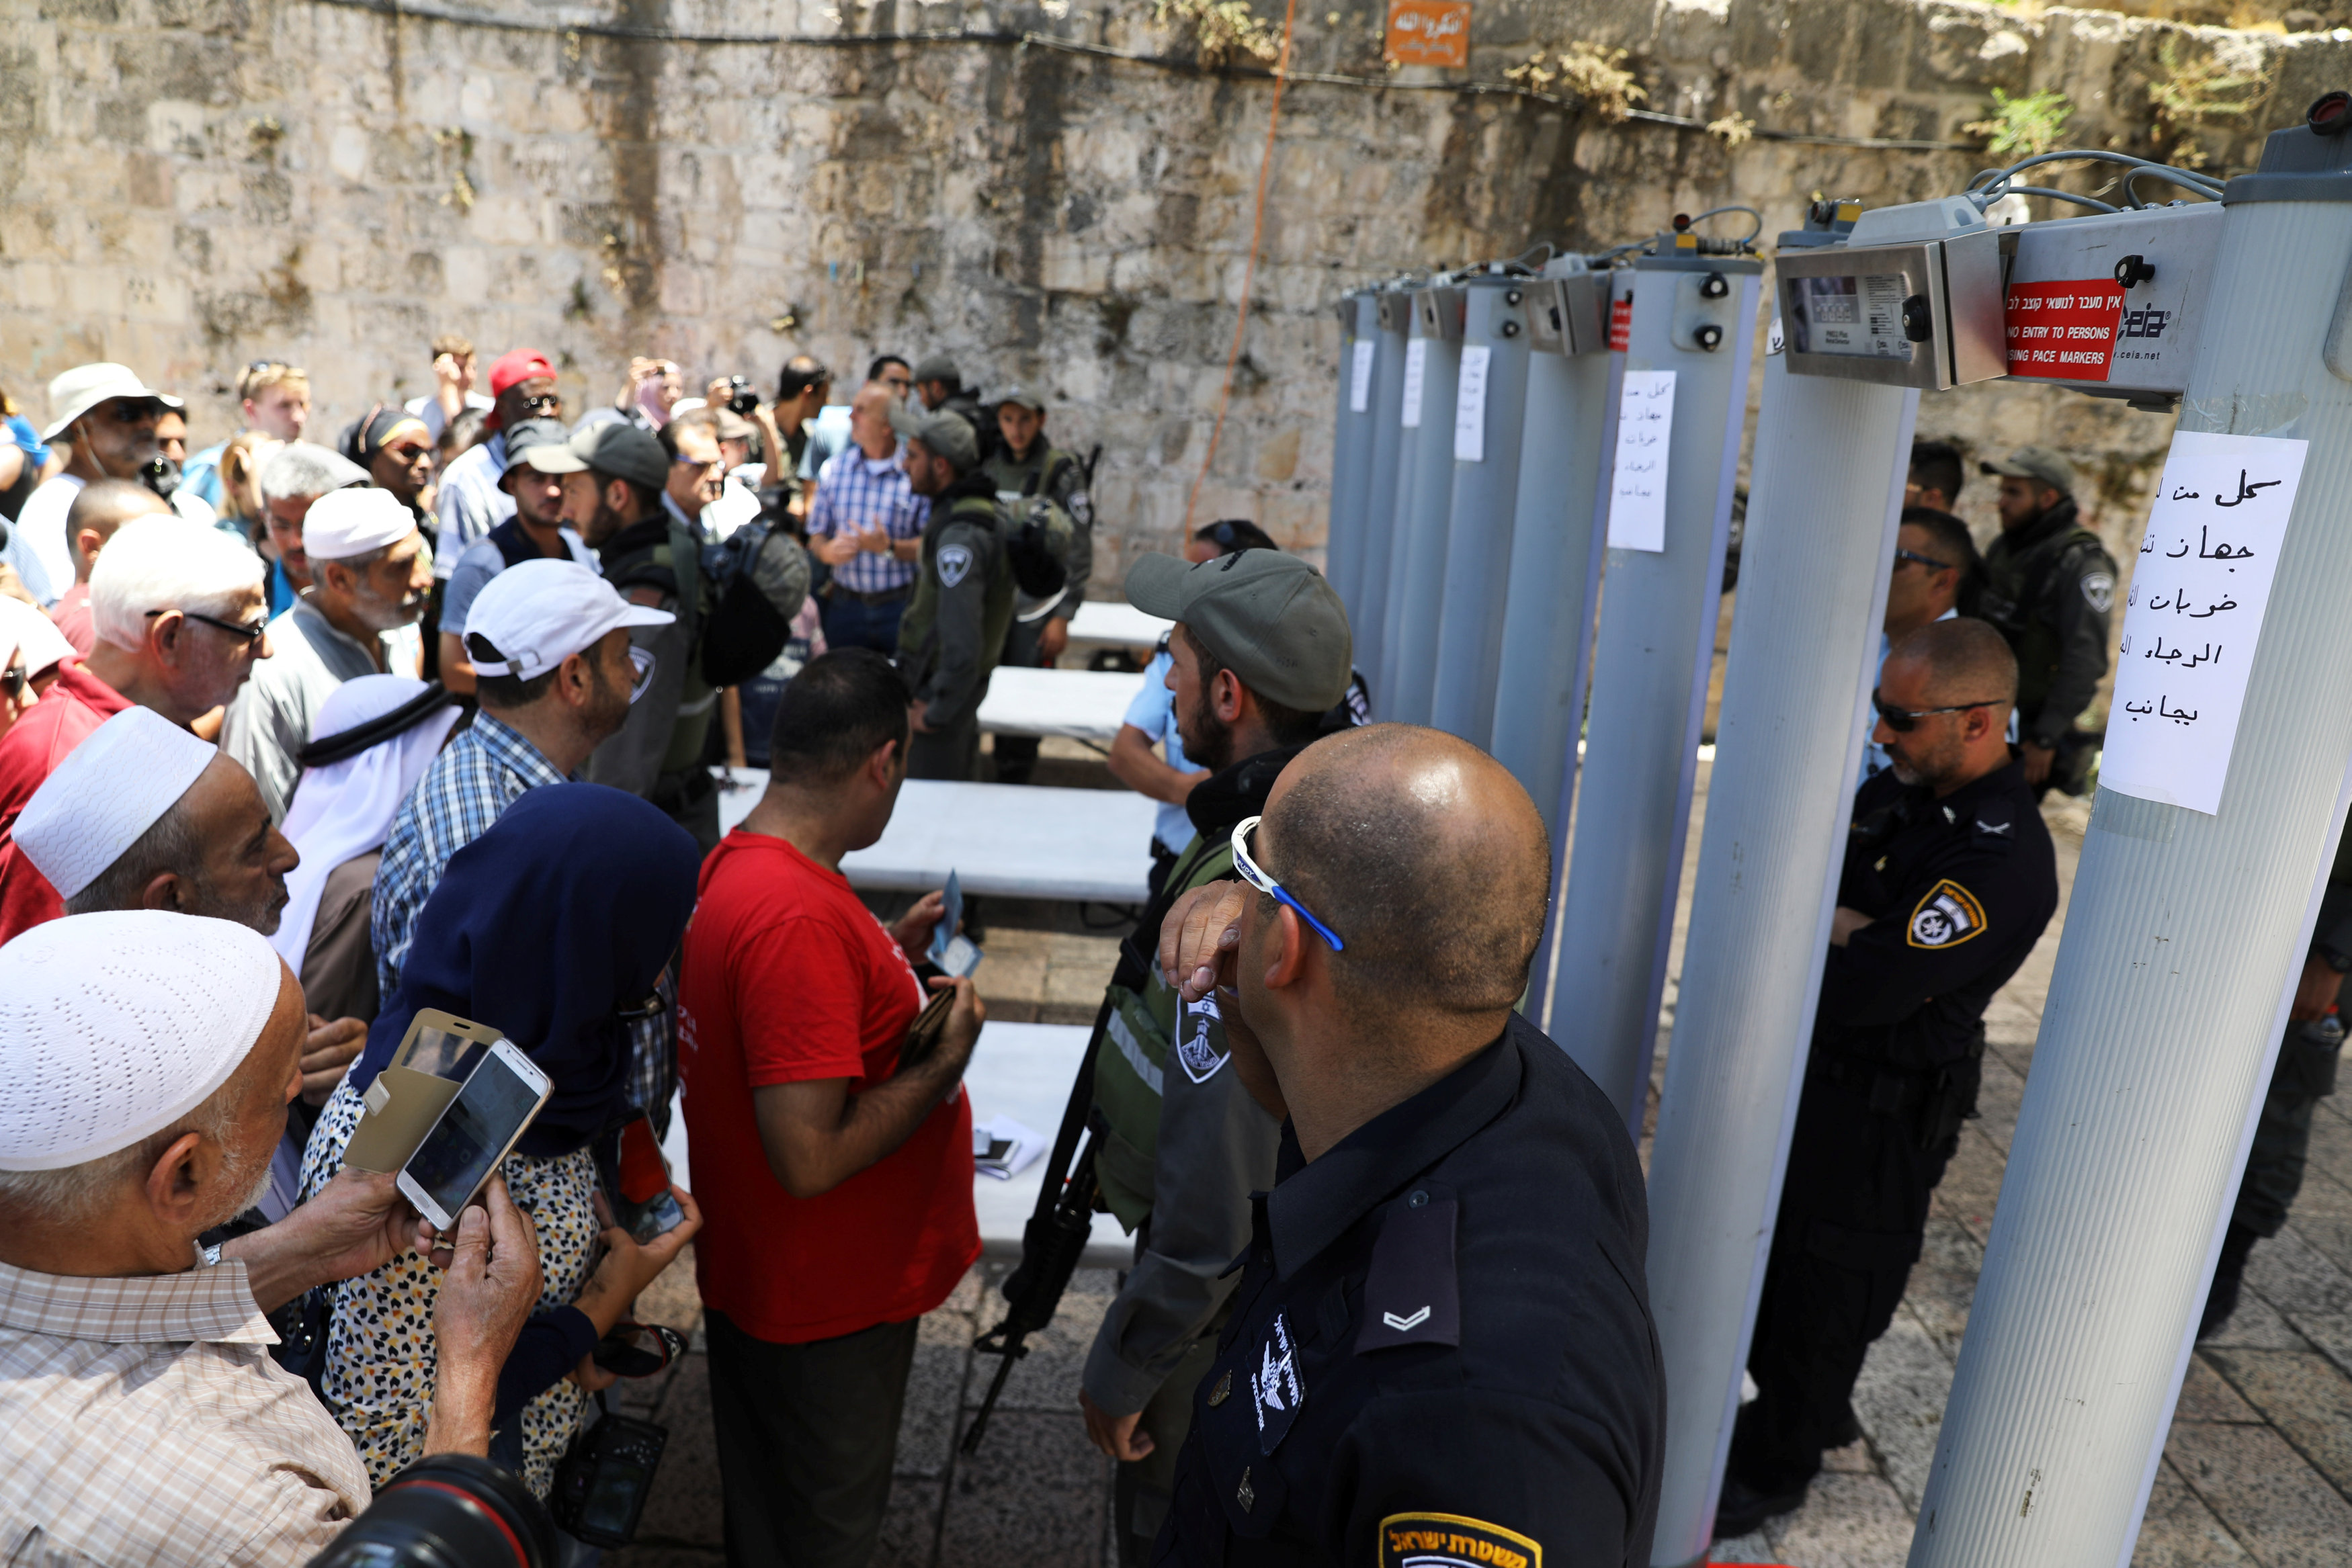 Palestinians stand in front of Israeli policemen and newly installed metal detectors at an entrance to the compound known to Muslims as Noble Sanctuary and to Jews as Temple Mount, in Jerusalem's Old City July 16, 2017.